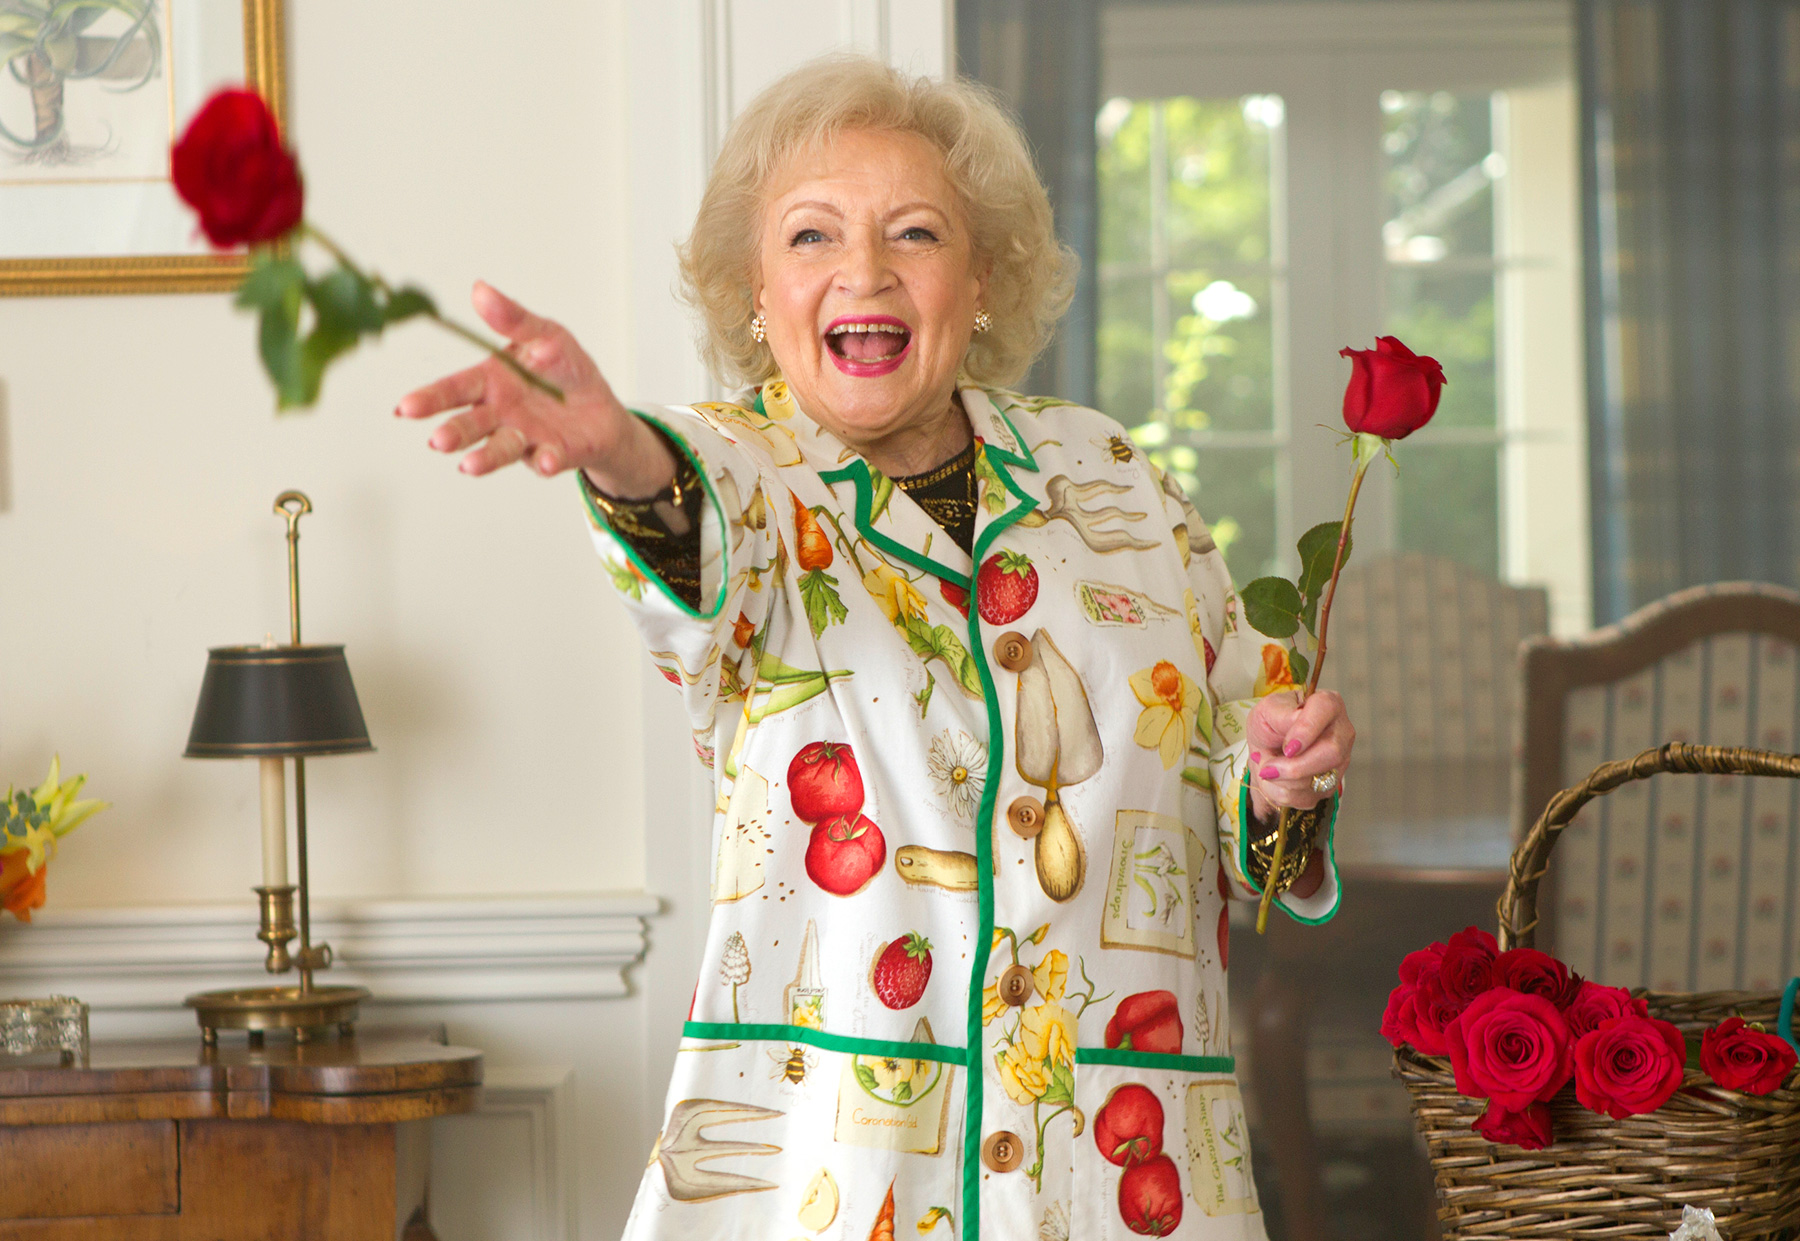 At age 89, White hosted and executive produced her prank show, Betty White's Off Their Rockers , in which senior citizens pranked youngsters. It was nominated for three primetime Emmys.